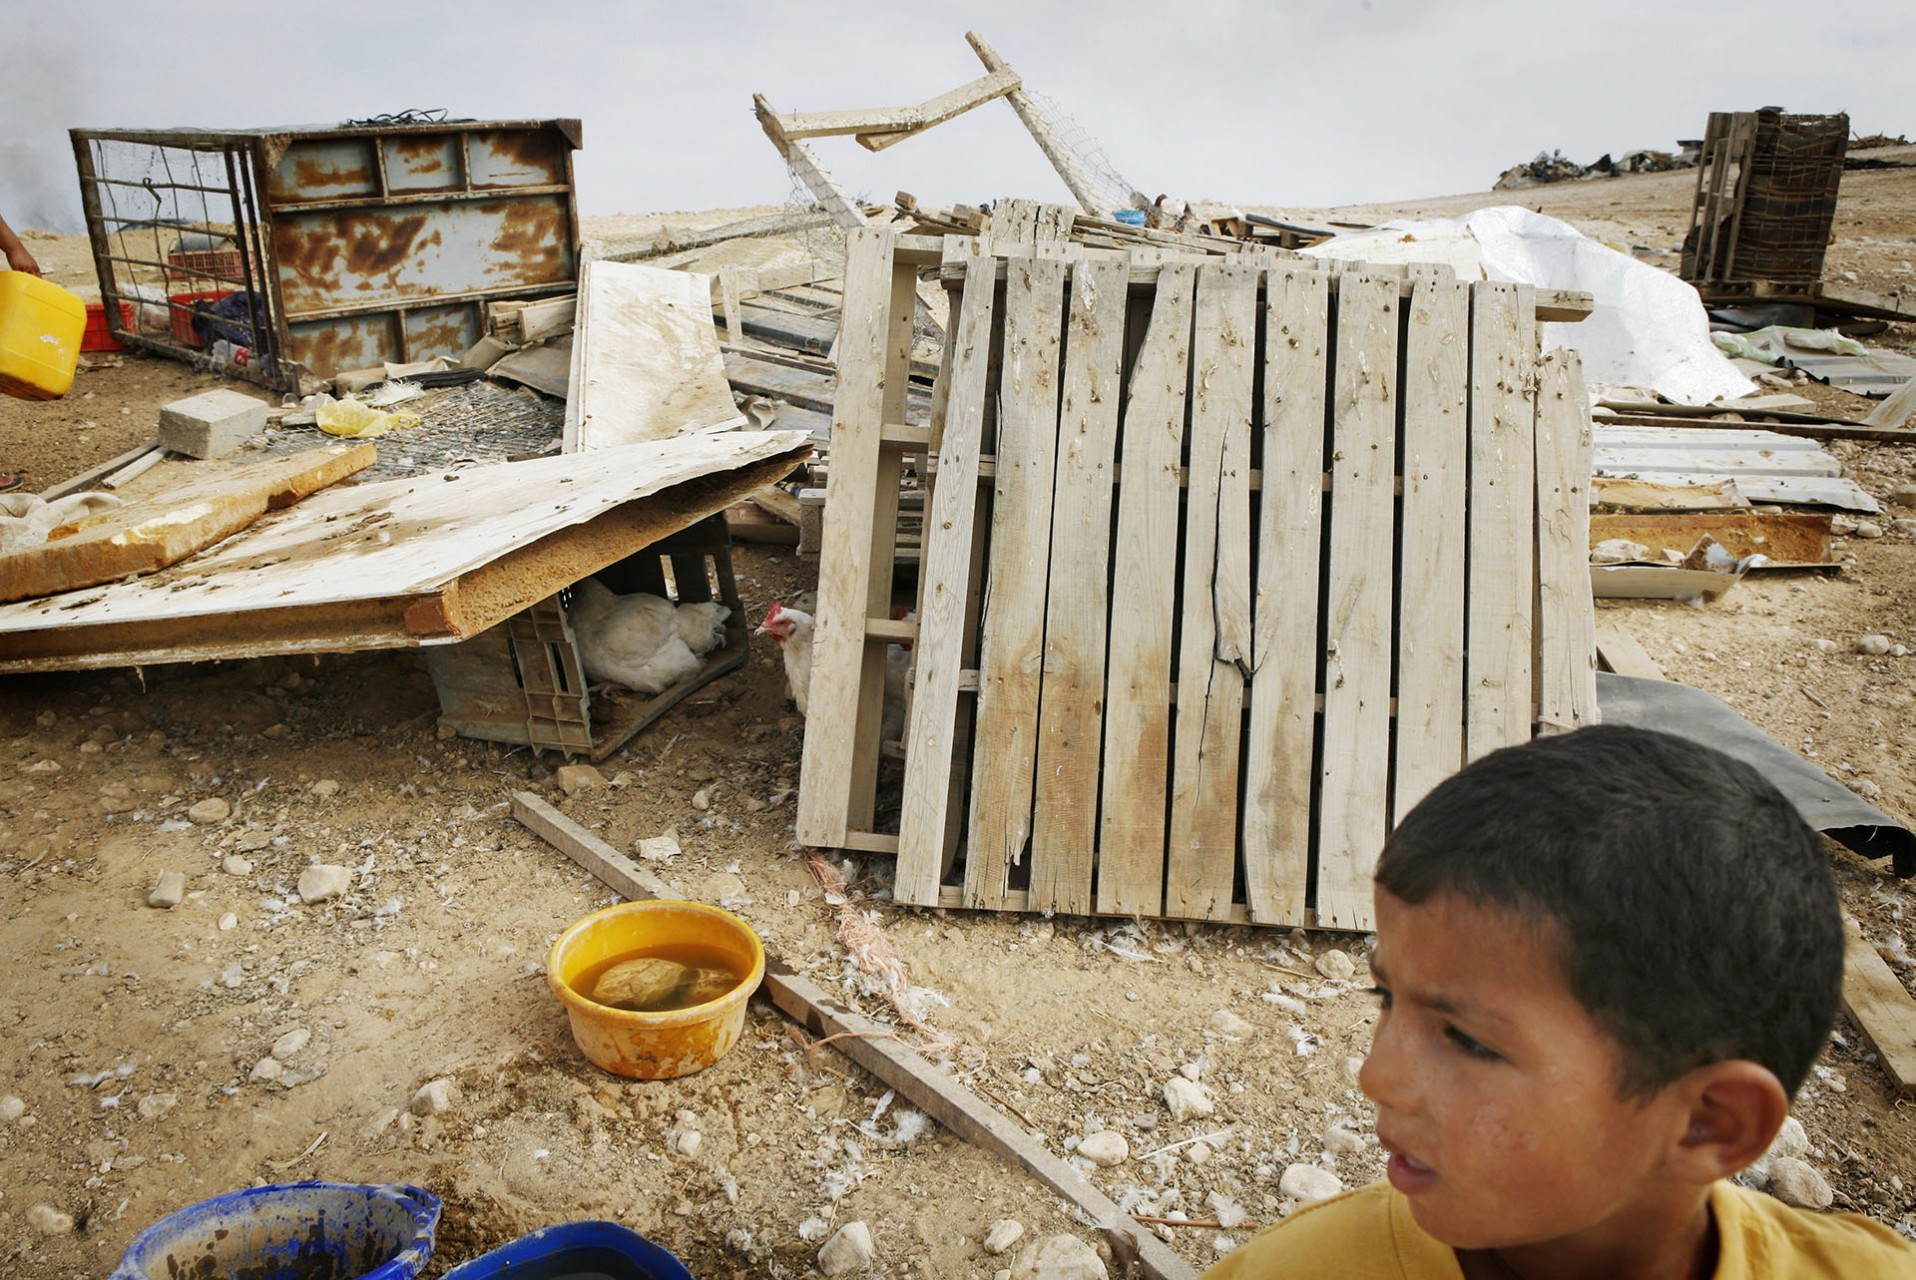 Mohammed surveys the destruction of the village he called home. Al Araqib, September 2010